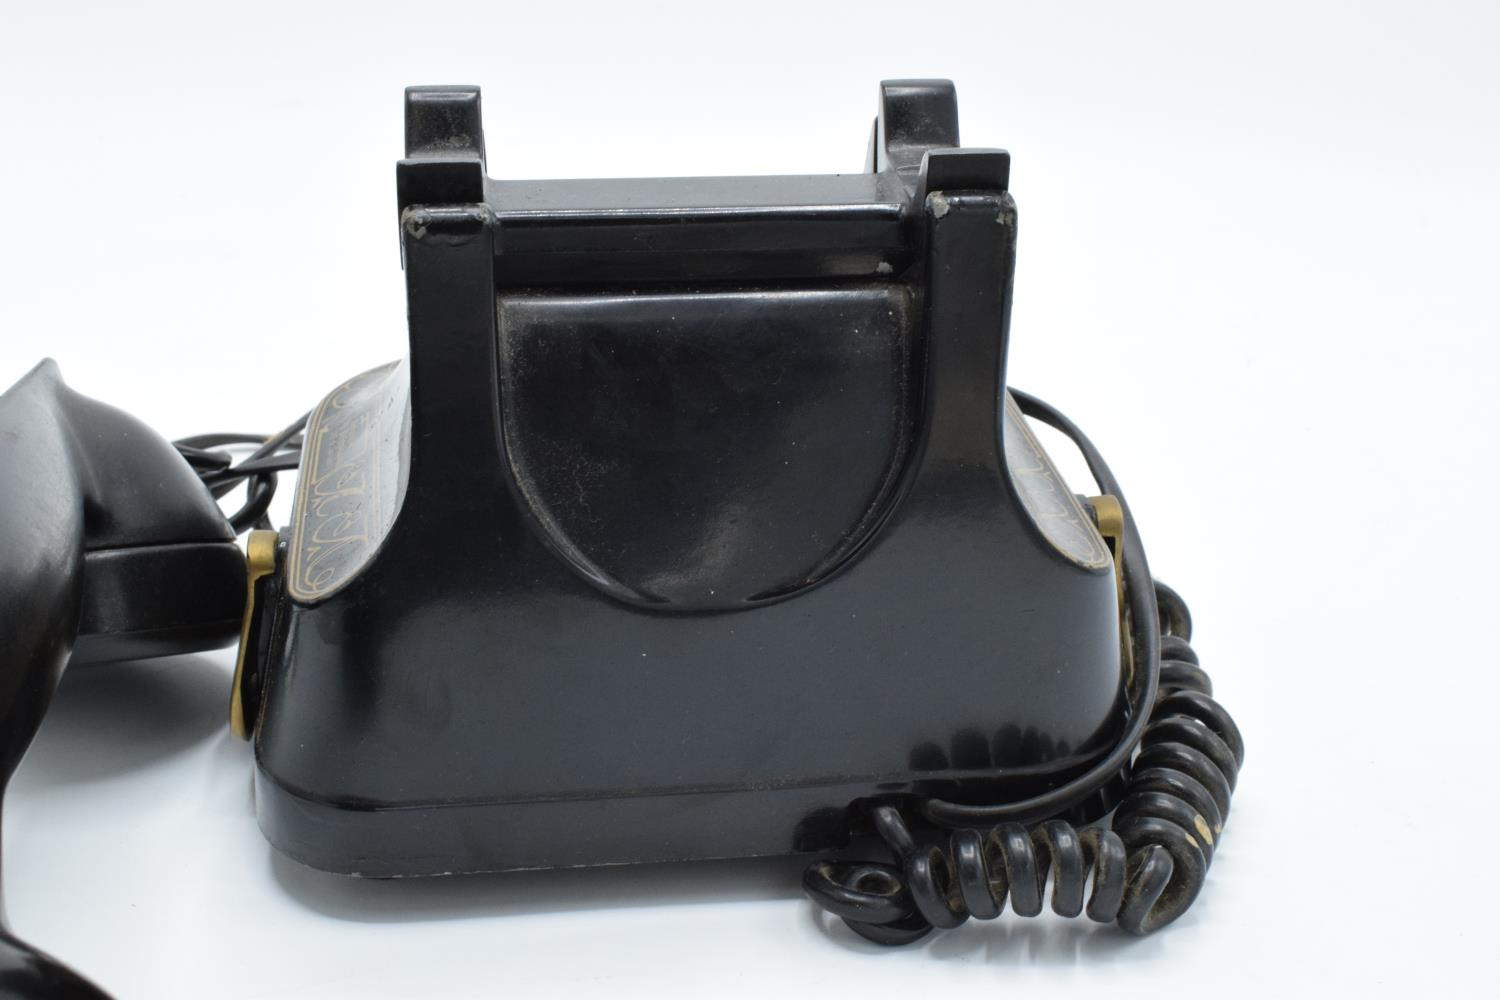 MFG Company Bell Telephone Belgique with Bakelite phone. Displays well. Untested. 16cm tall. - Image 5 of 7